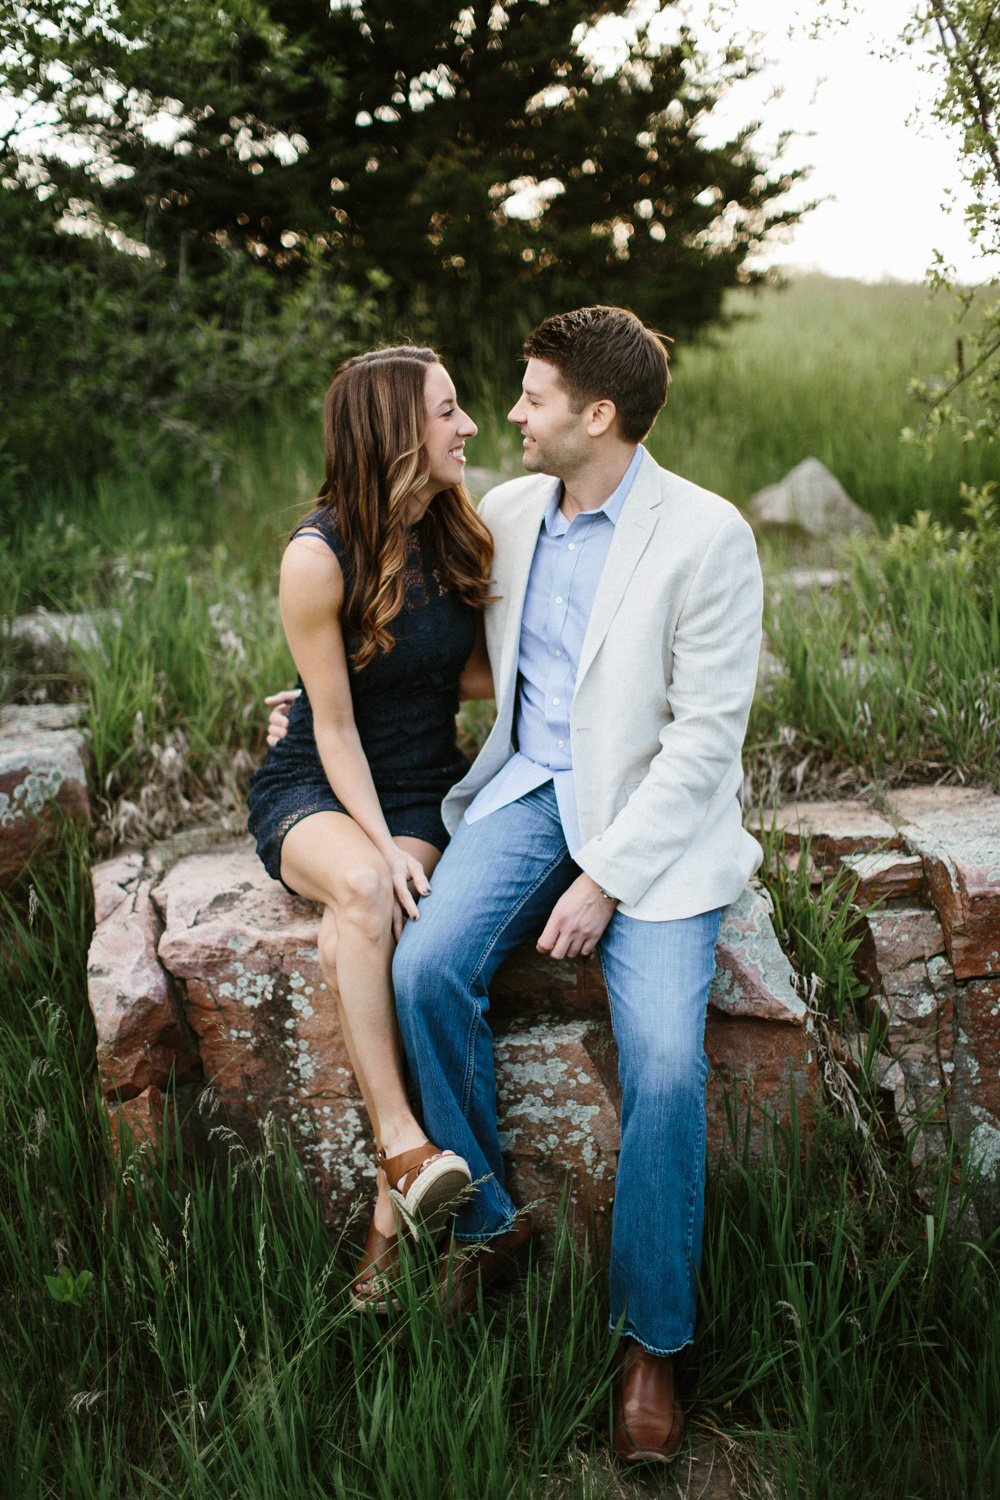 Des_Moines_Sioux_Falls_Wedding_Photographer_Renae&Adam24.jpg